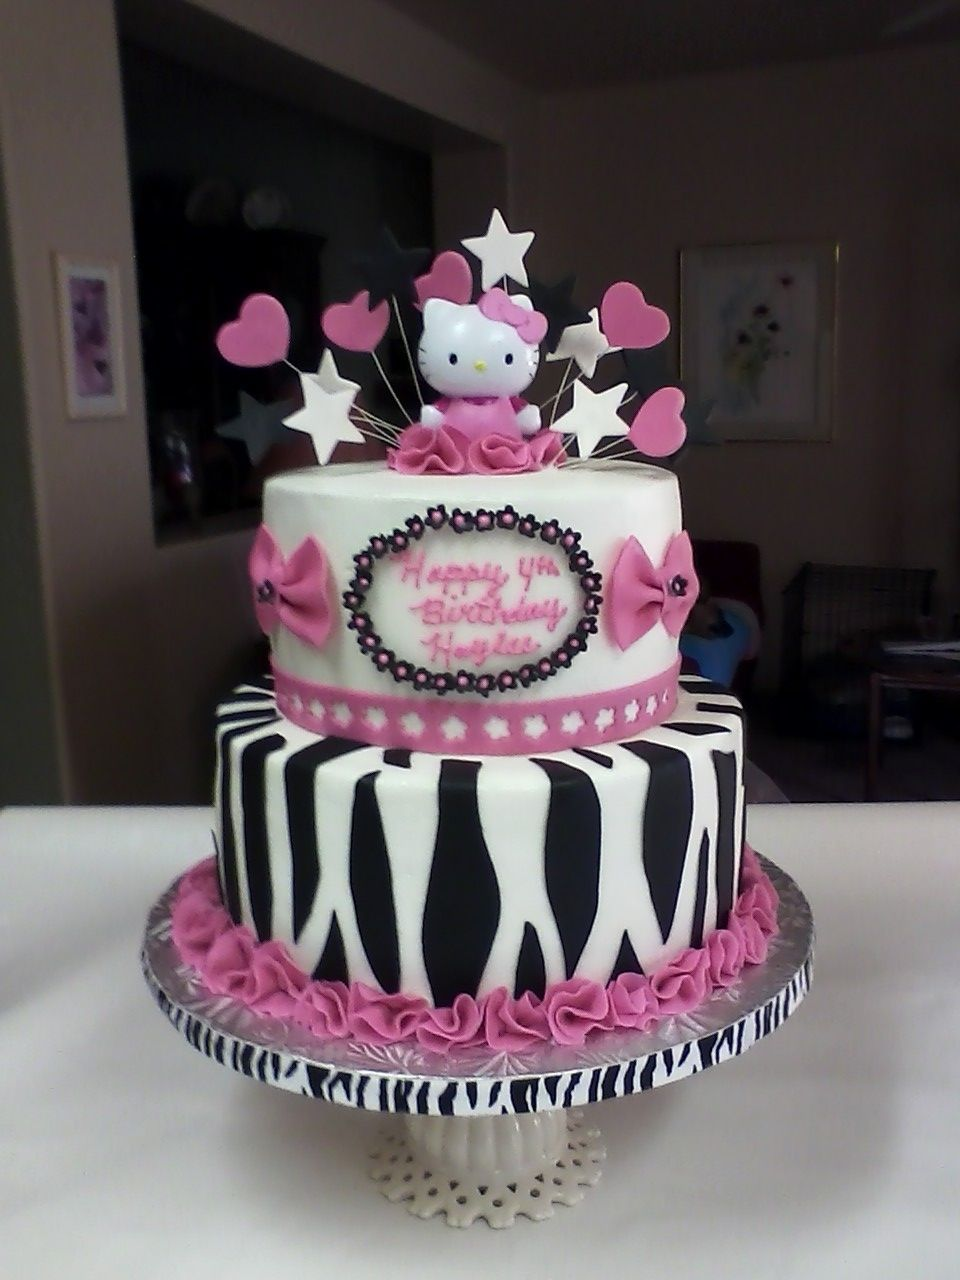 Haylees Hello Kitty Ive been making cakes for this special